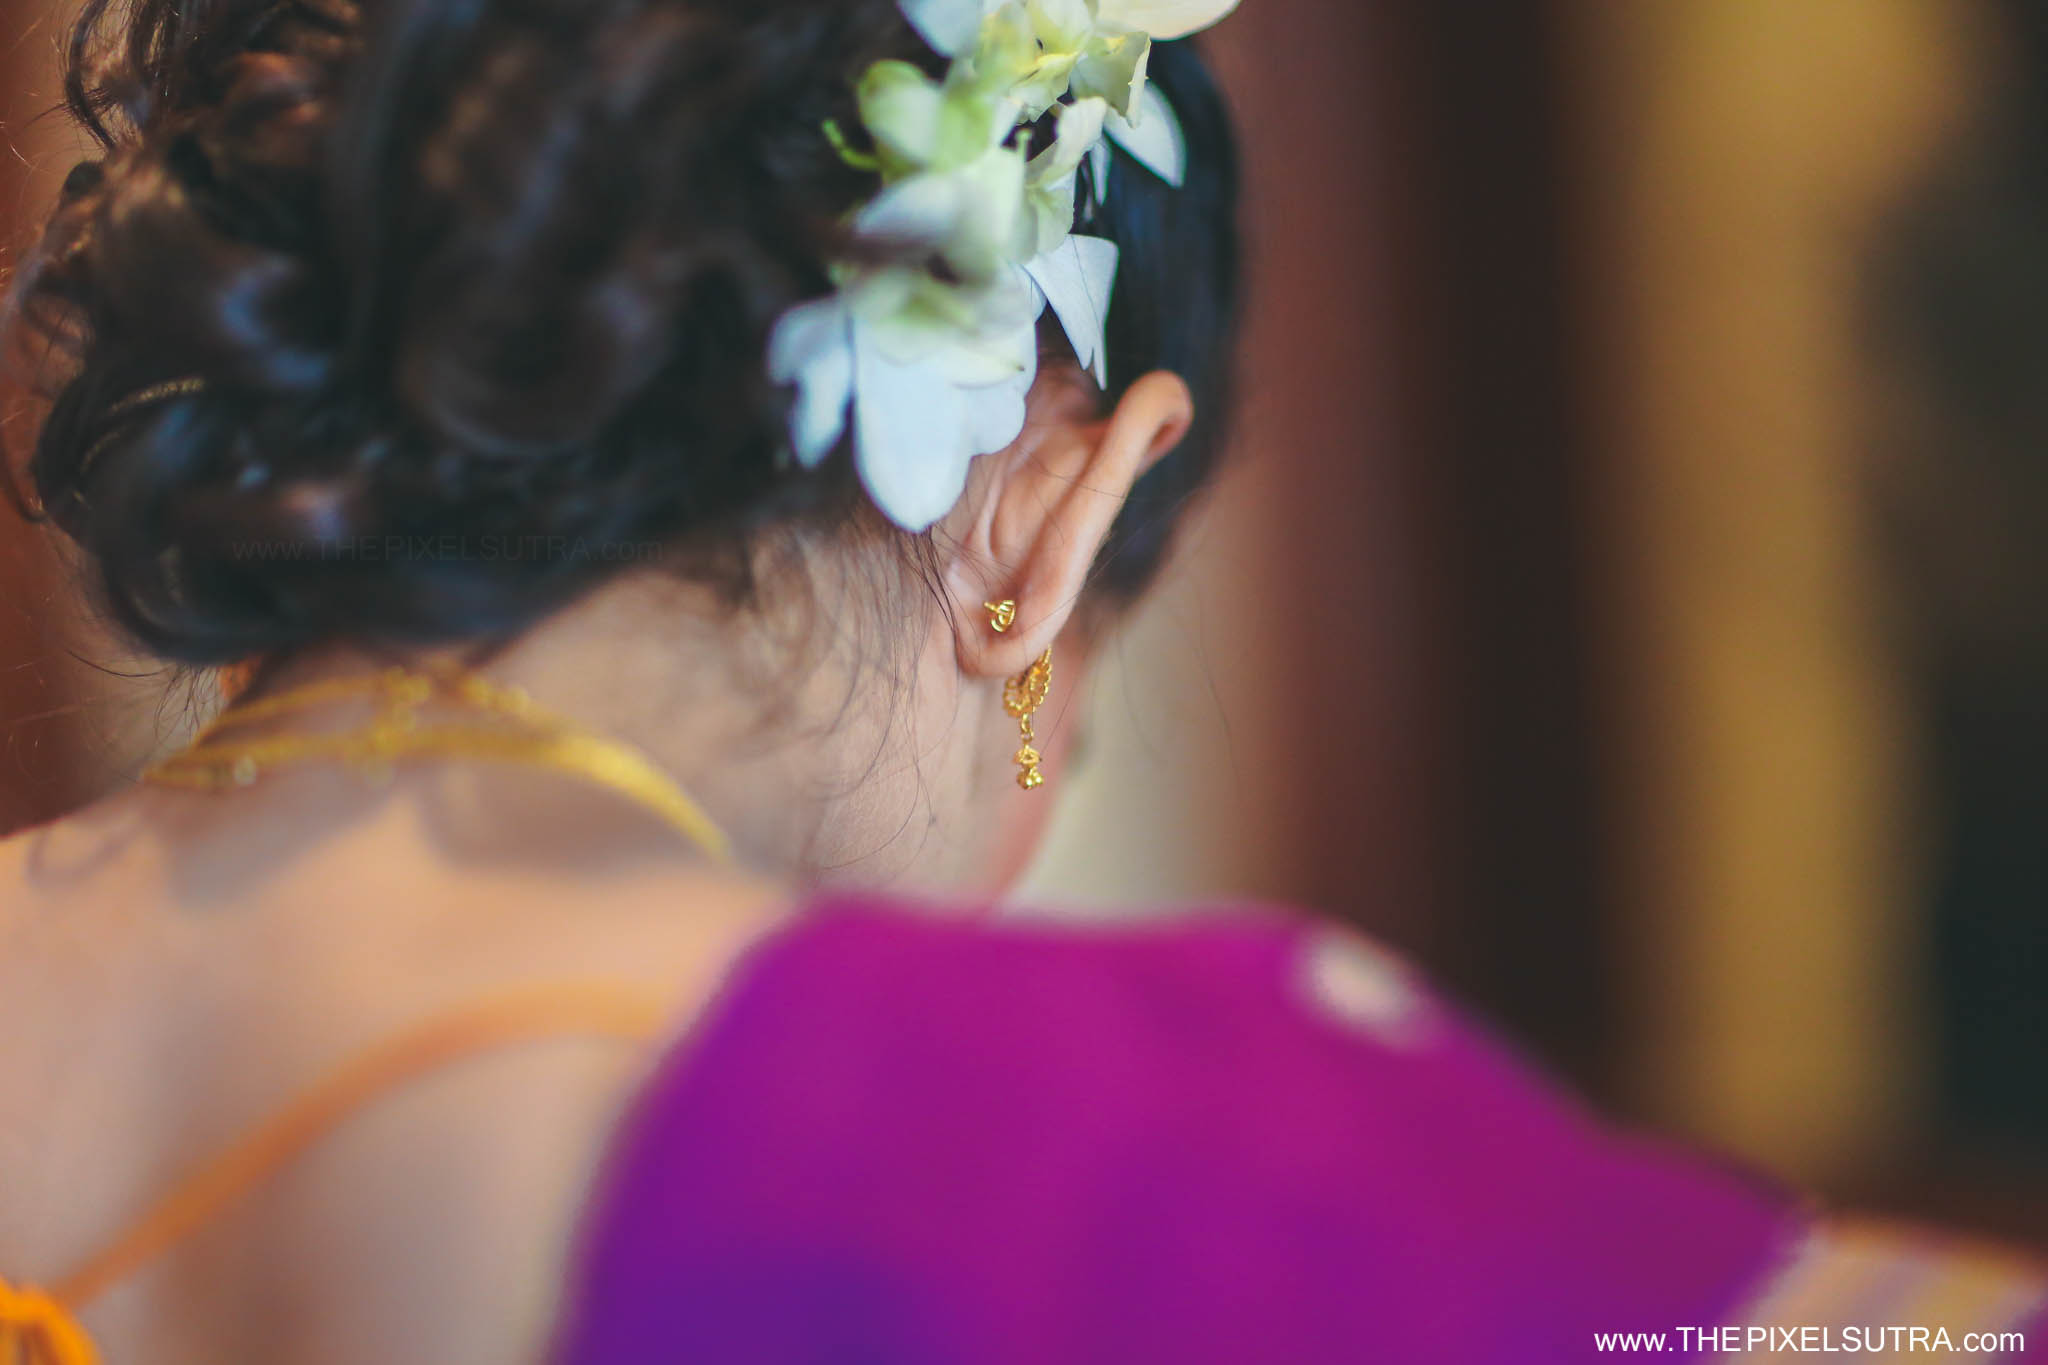 The Pixel Sutra Nachiket x Priyanka Candid Wedding photographer Mumbai Best  (21).jpg